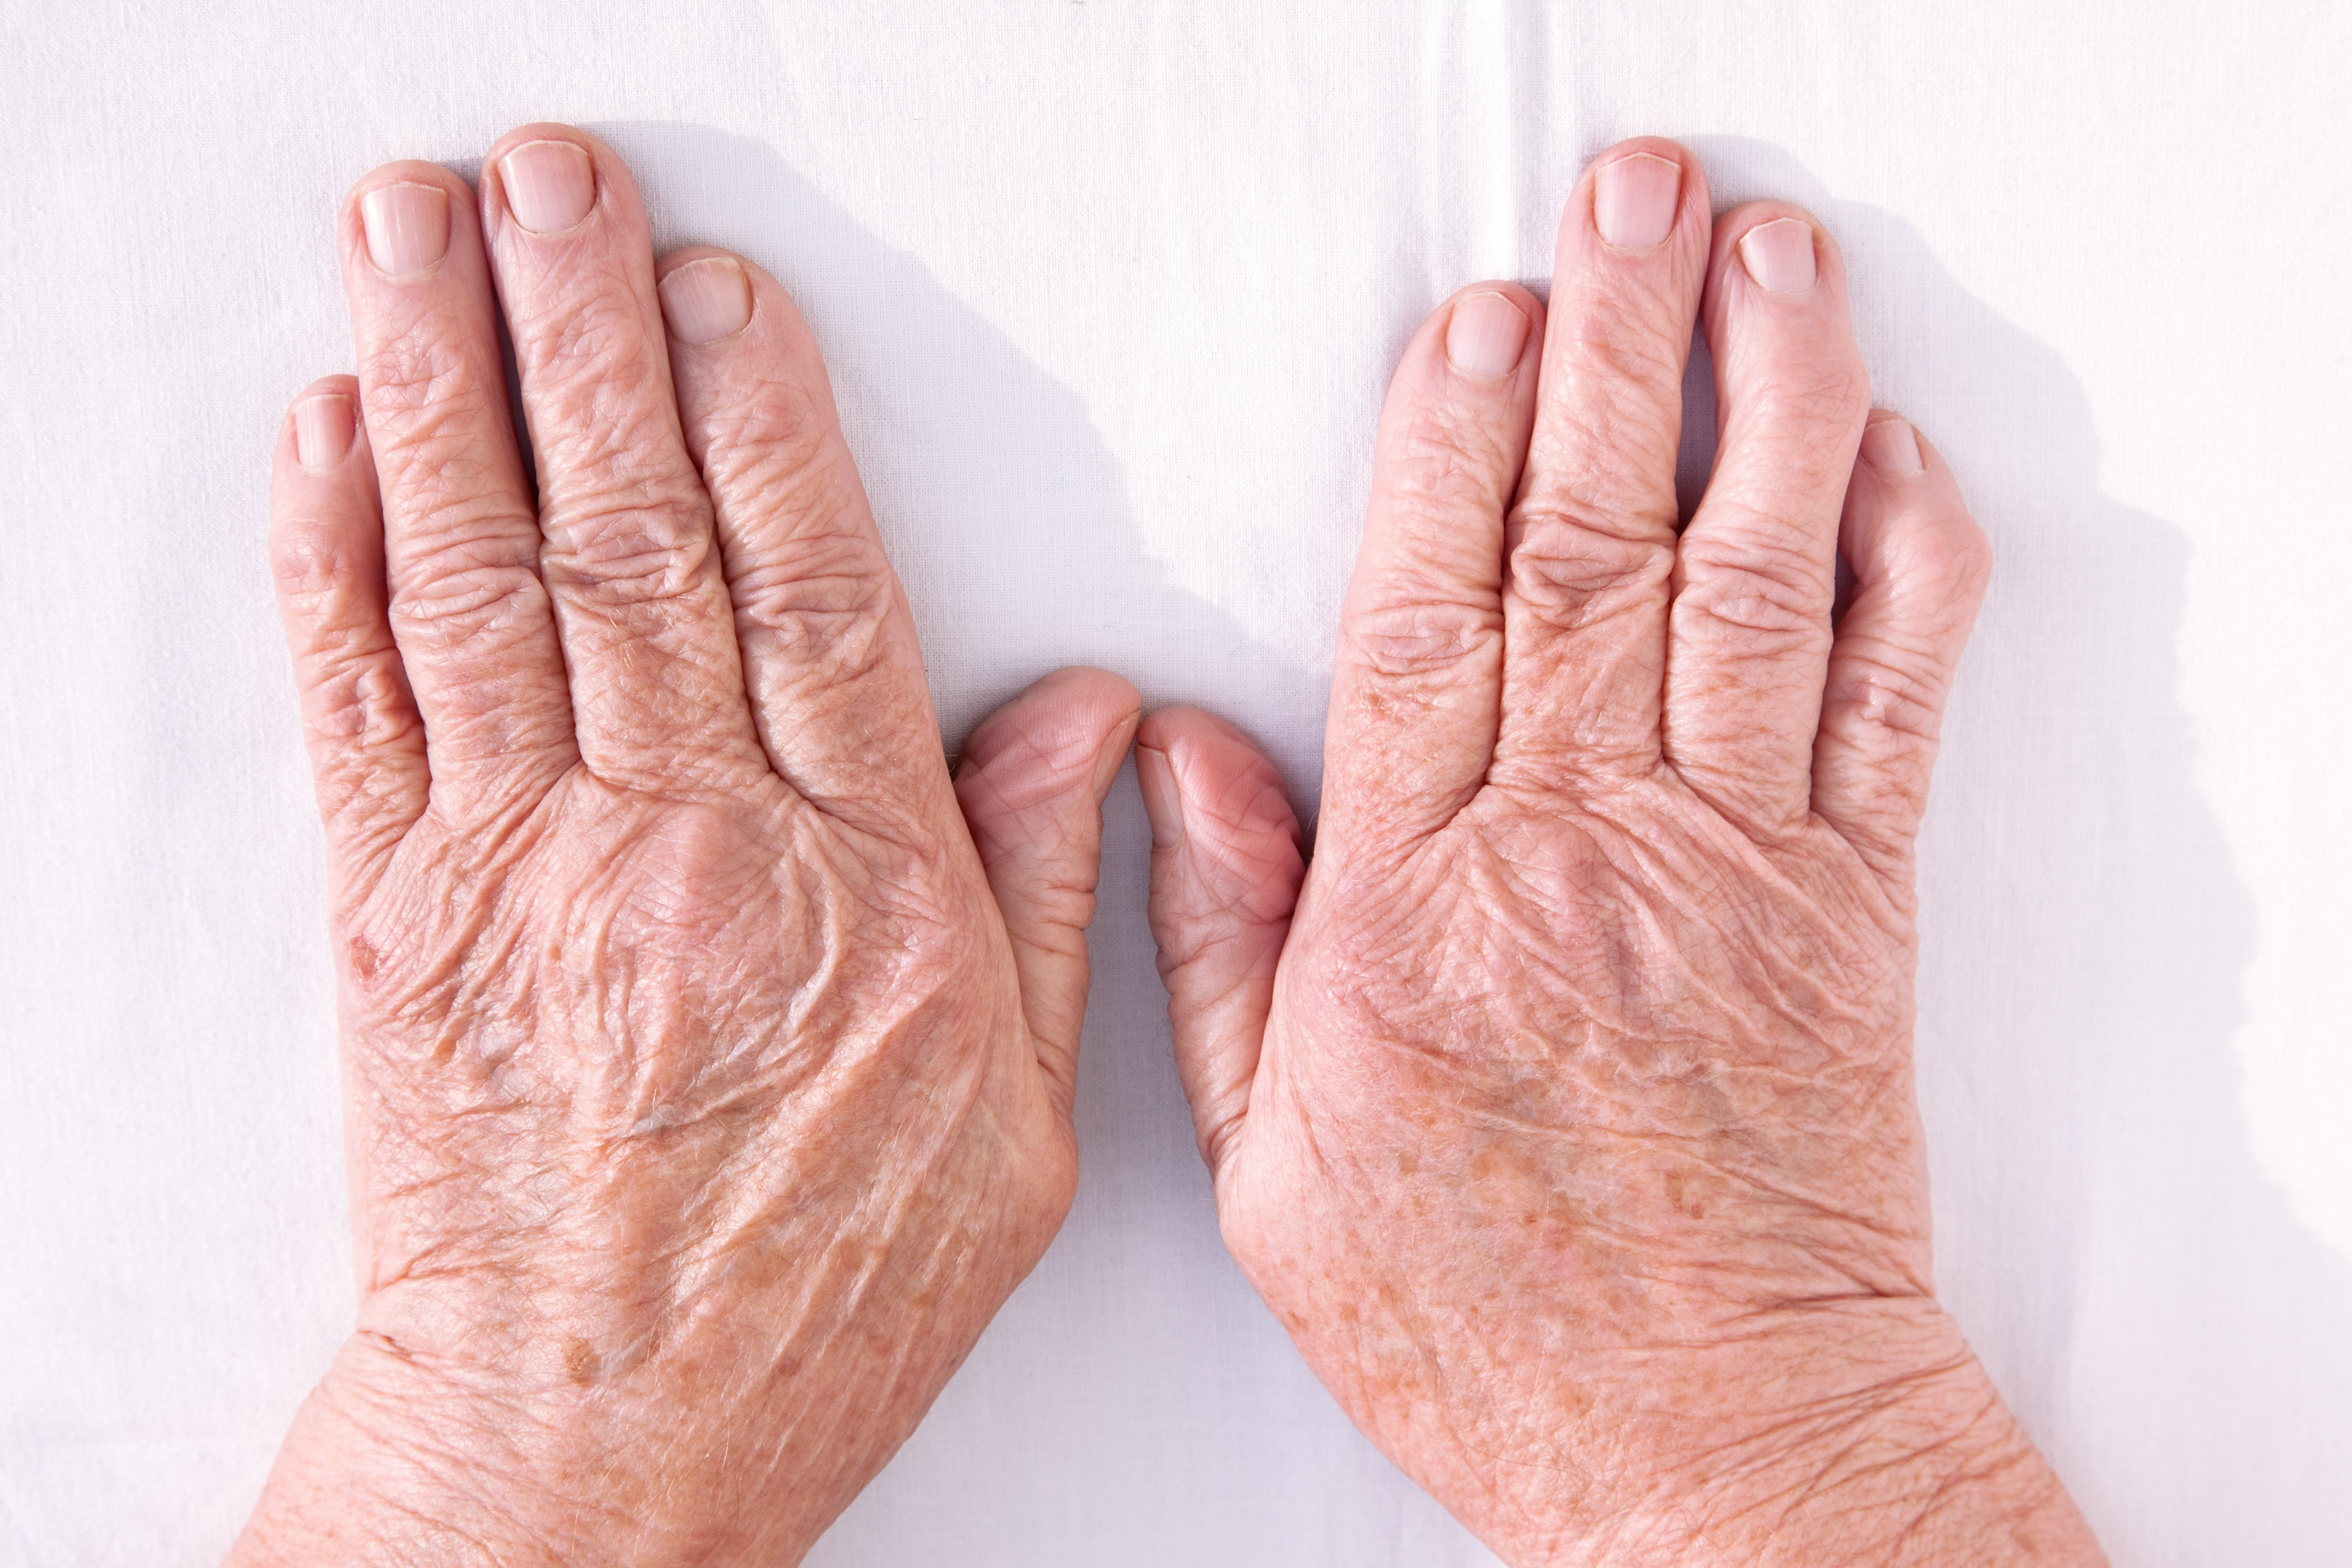 An old, wrinkled pair of hands